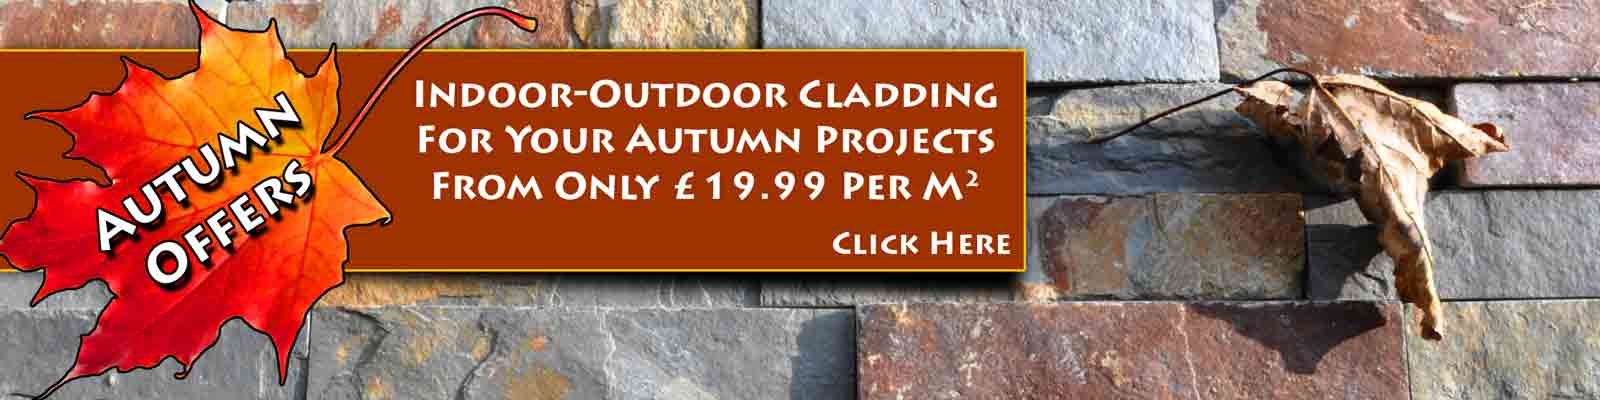 Rock Panel - Ochre - October Cladding Offers